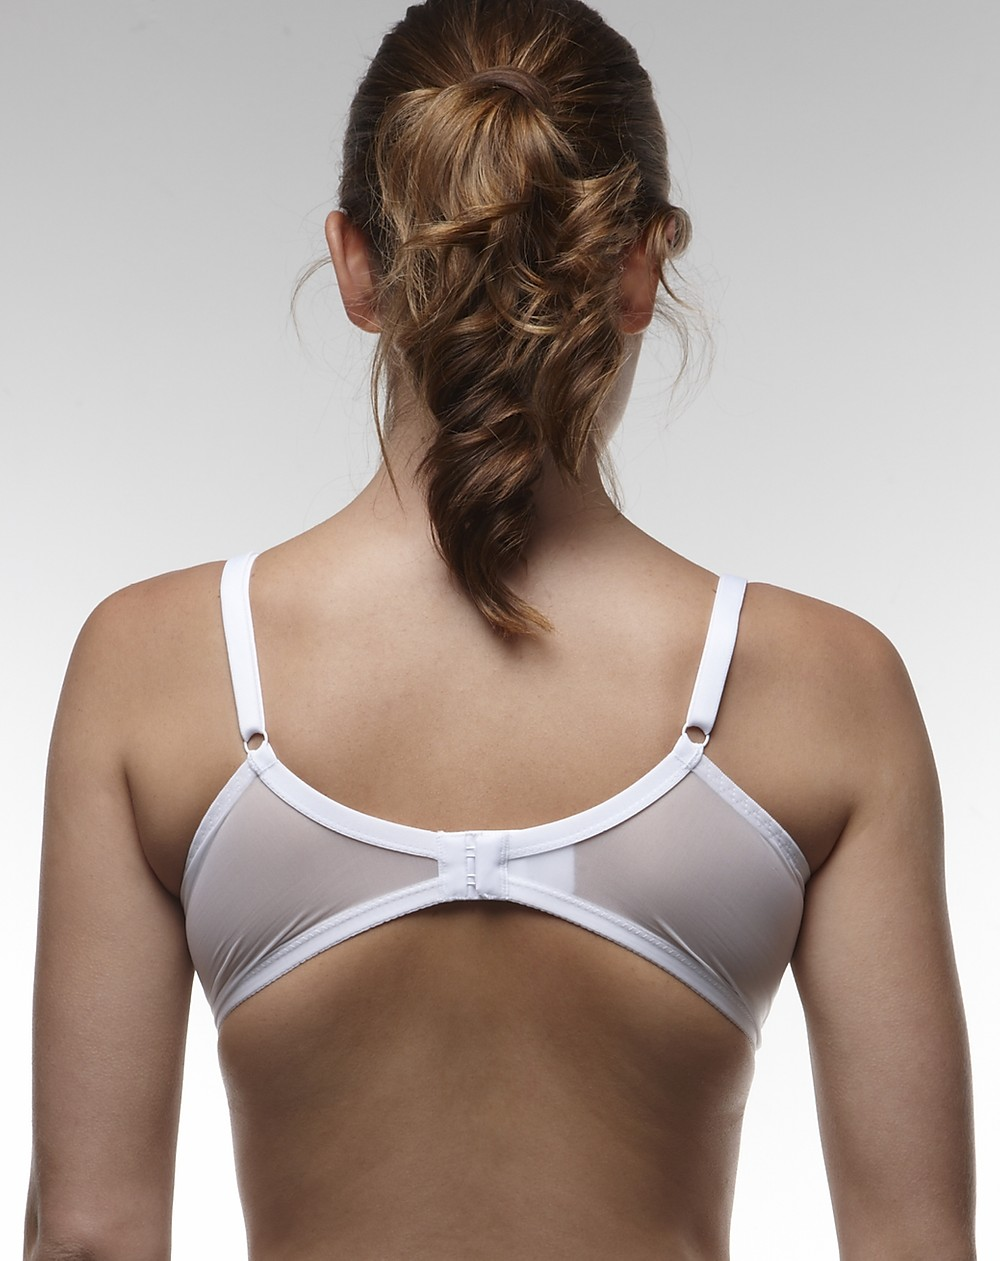 image of an ill-fitting bra with the band too tight